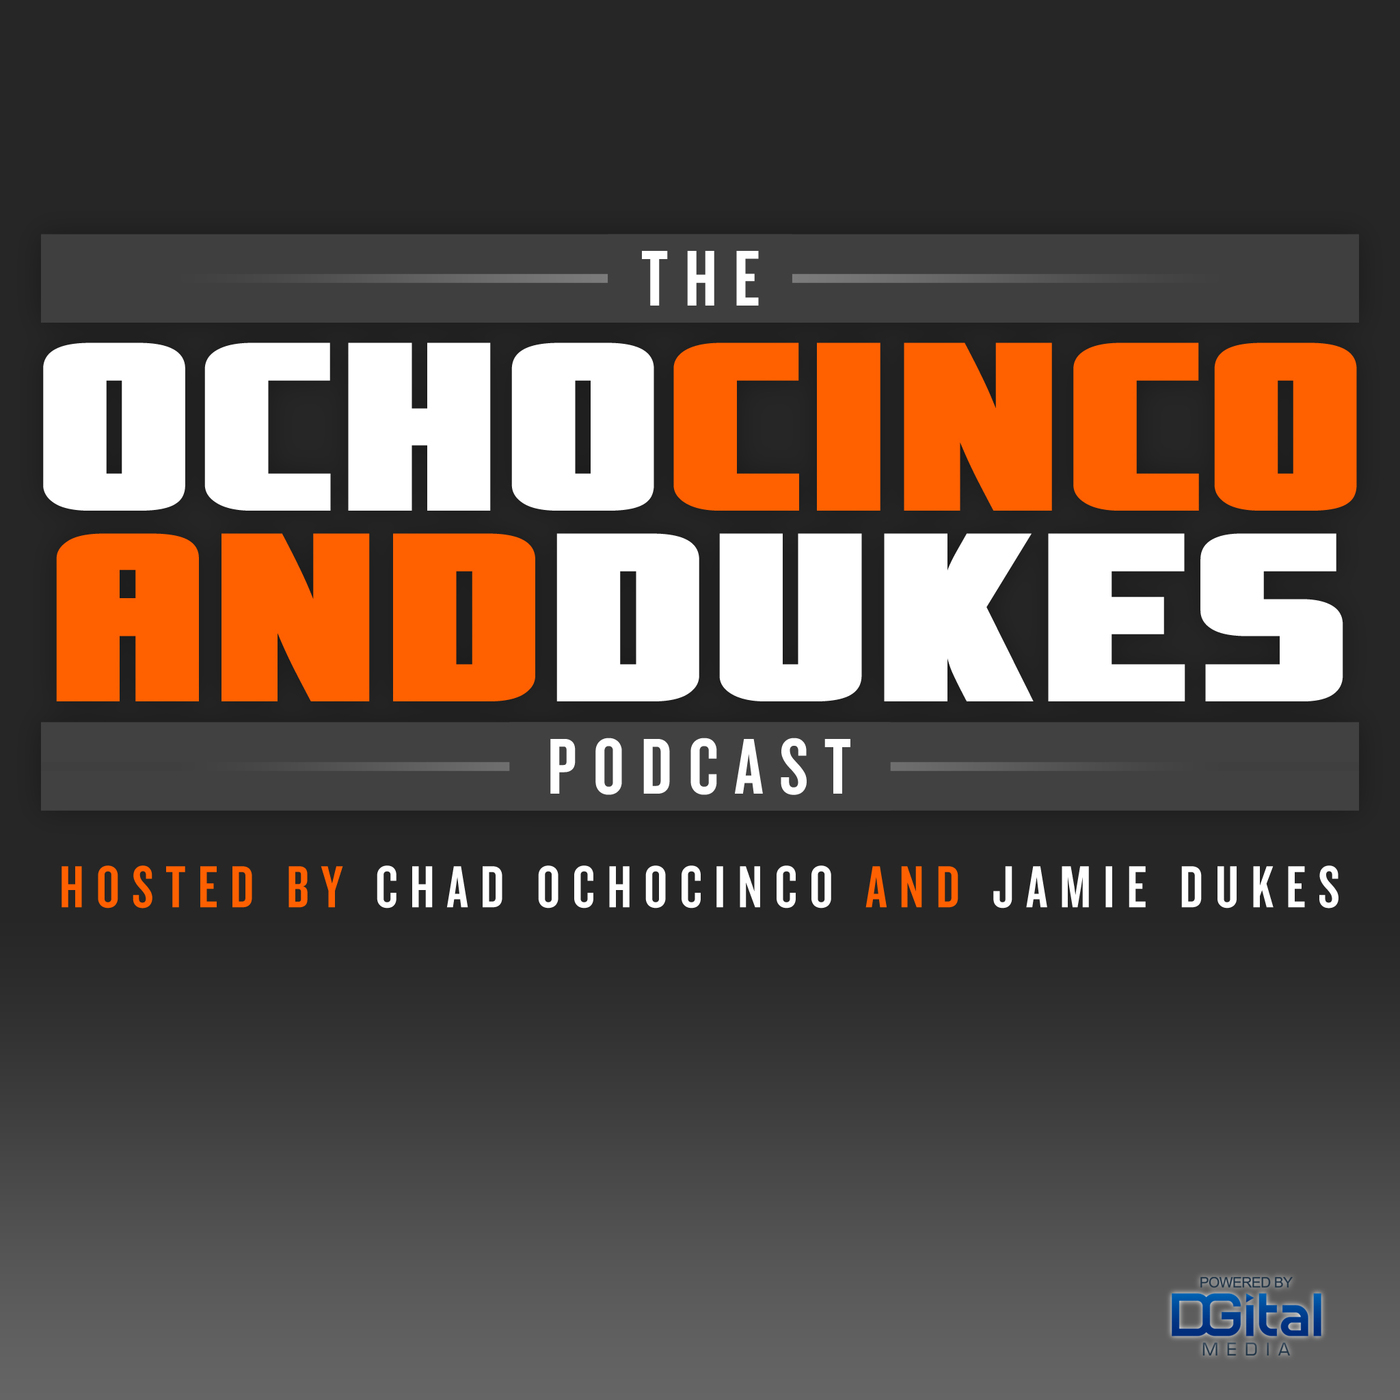 The Ochocinco and Dukes Podcast